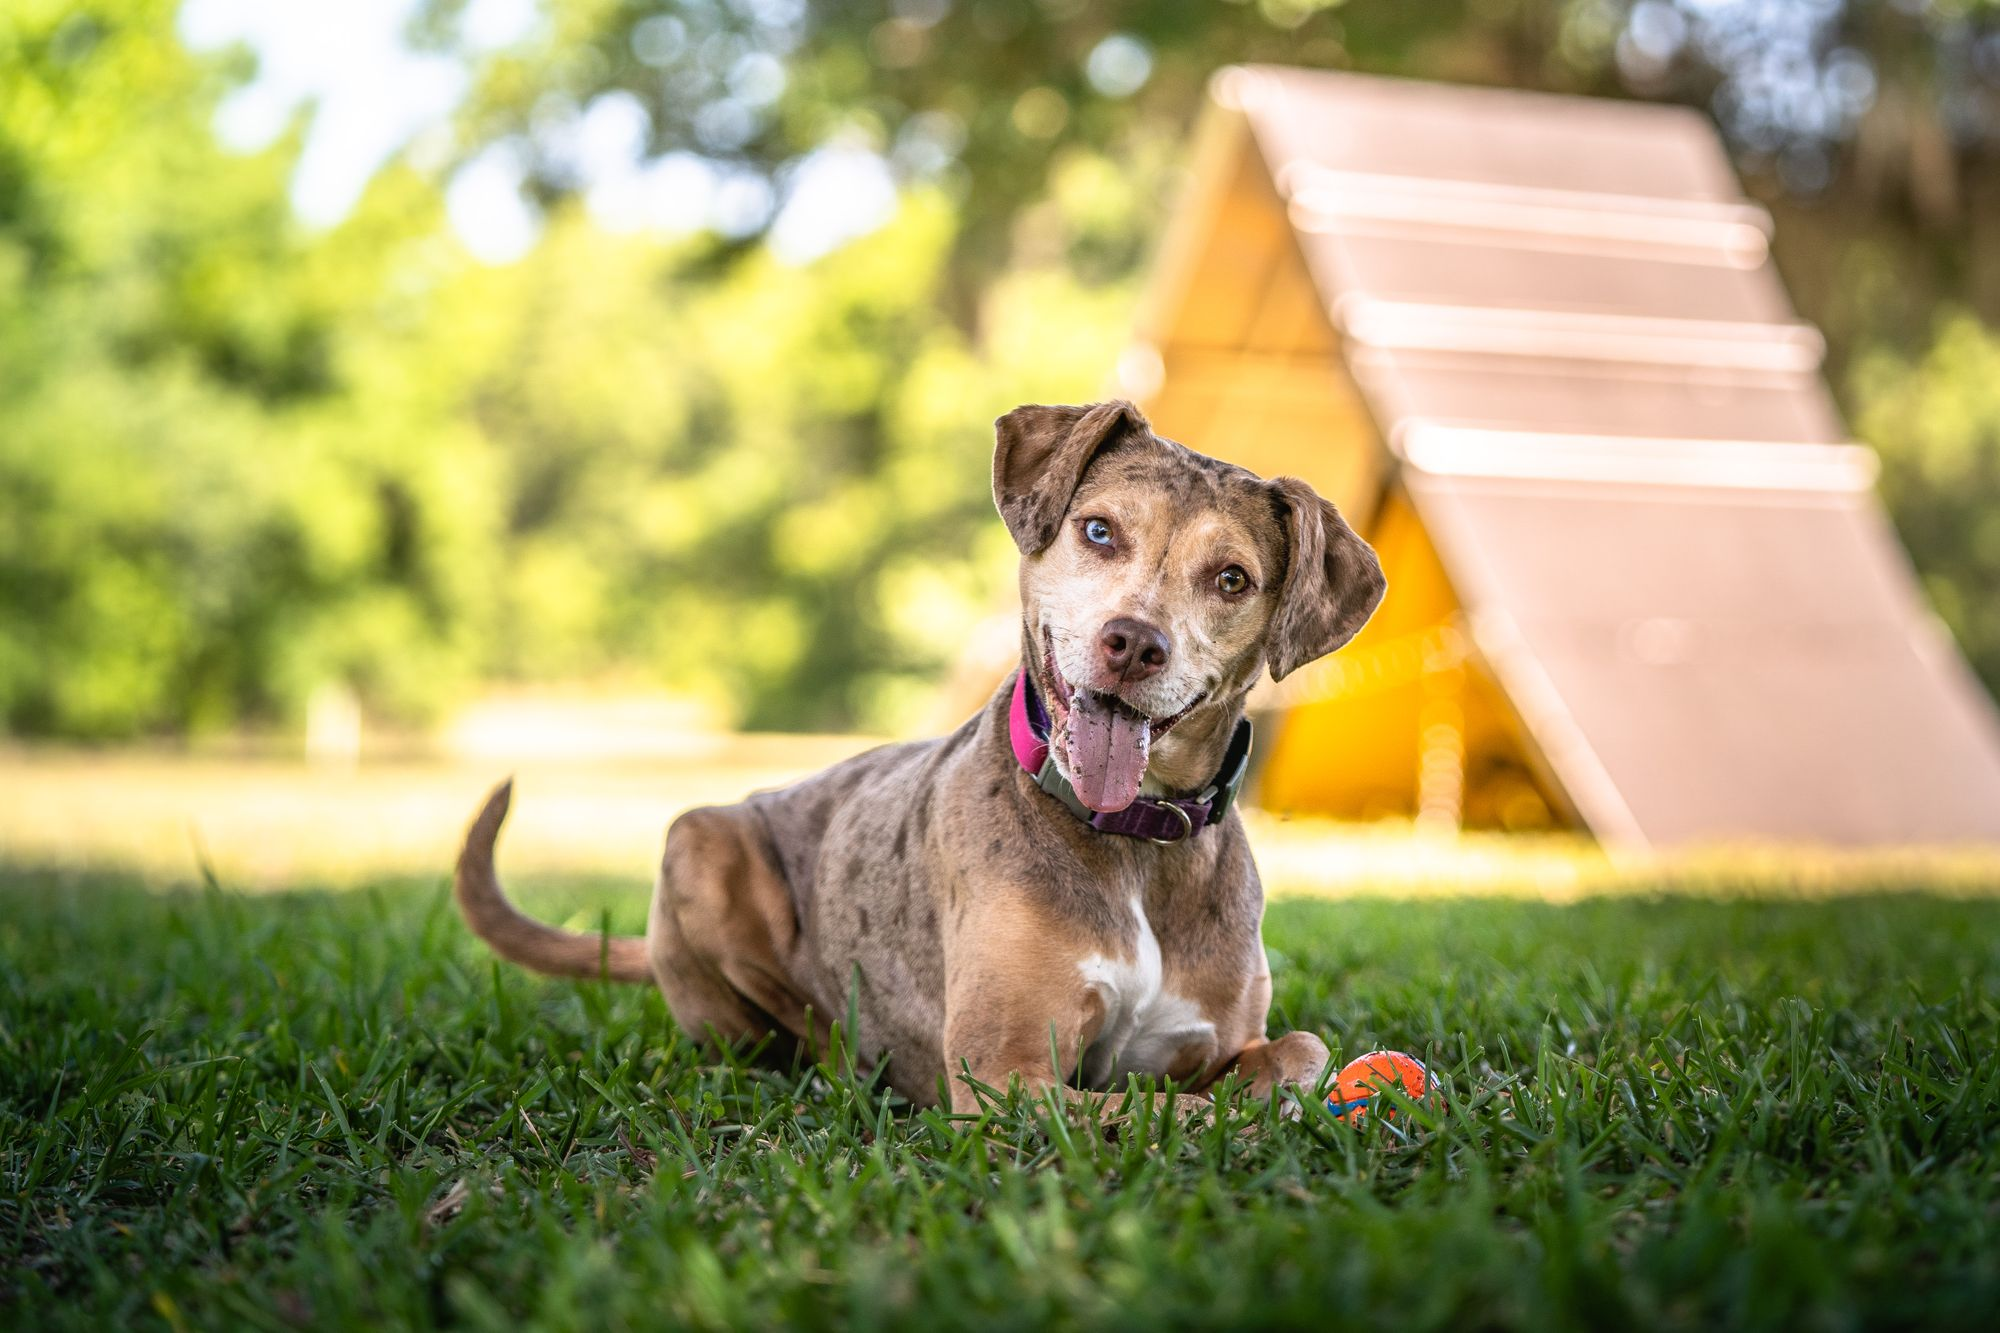 Suns Out, Tongues Out - Signs Of Heat Induced Illness In Dogs From Dr. Lil, VMD